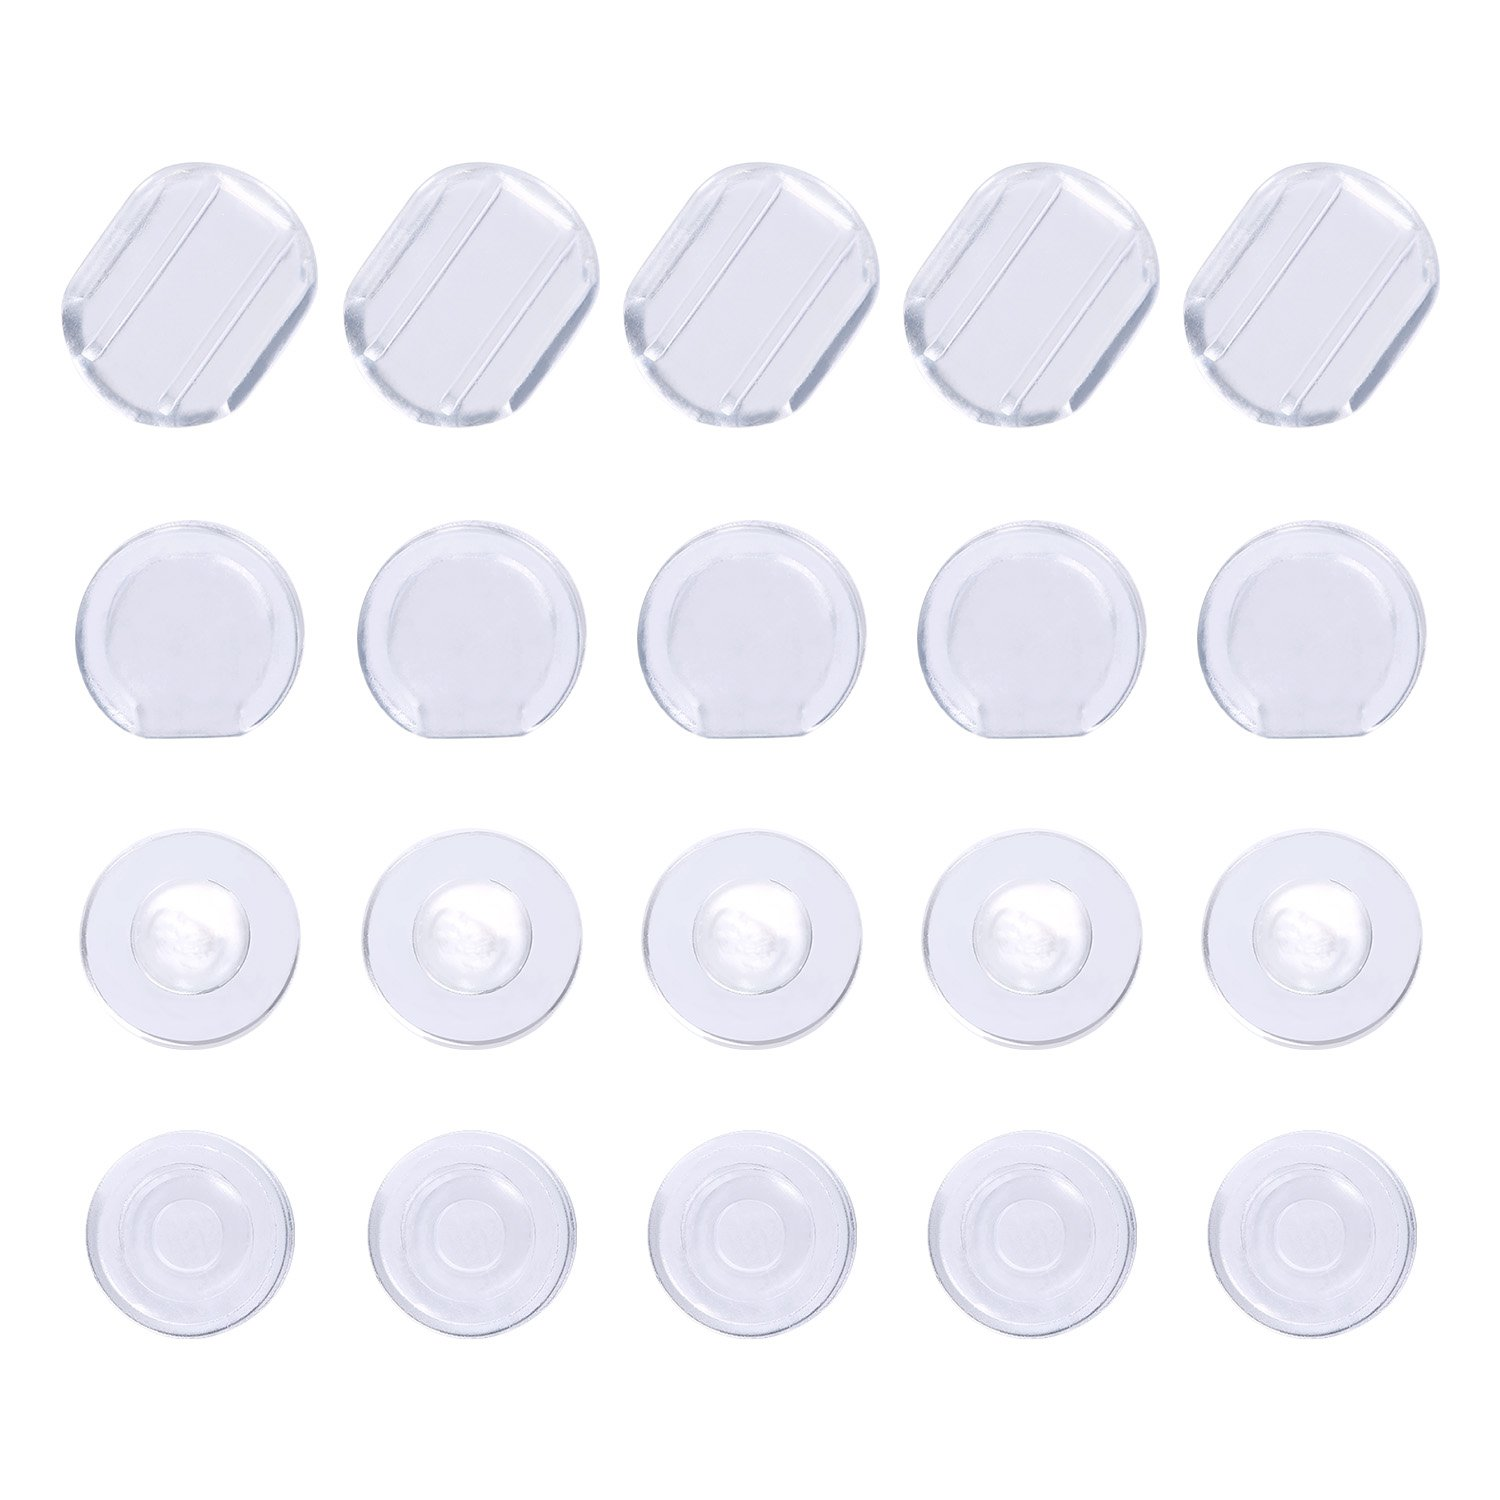 Maxdot 100 Pieces 4 Size Earring Pads Silicone Comfort Earring Cushions for Clips on Earrings, Clear 4336827543